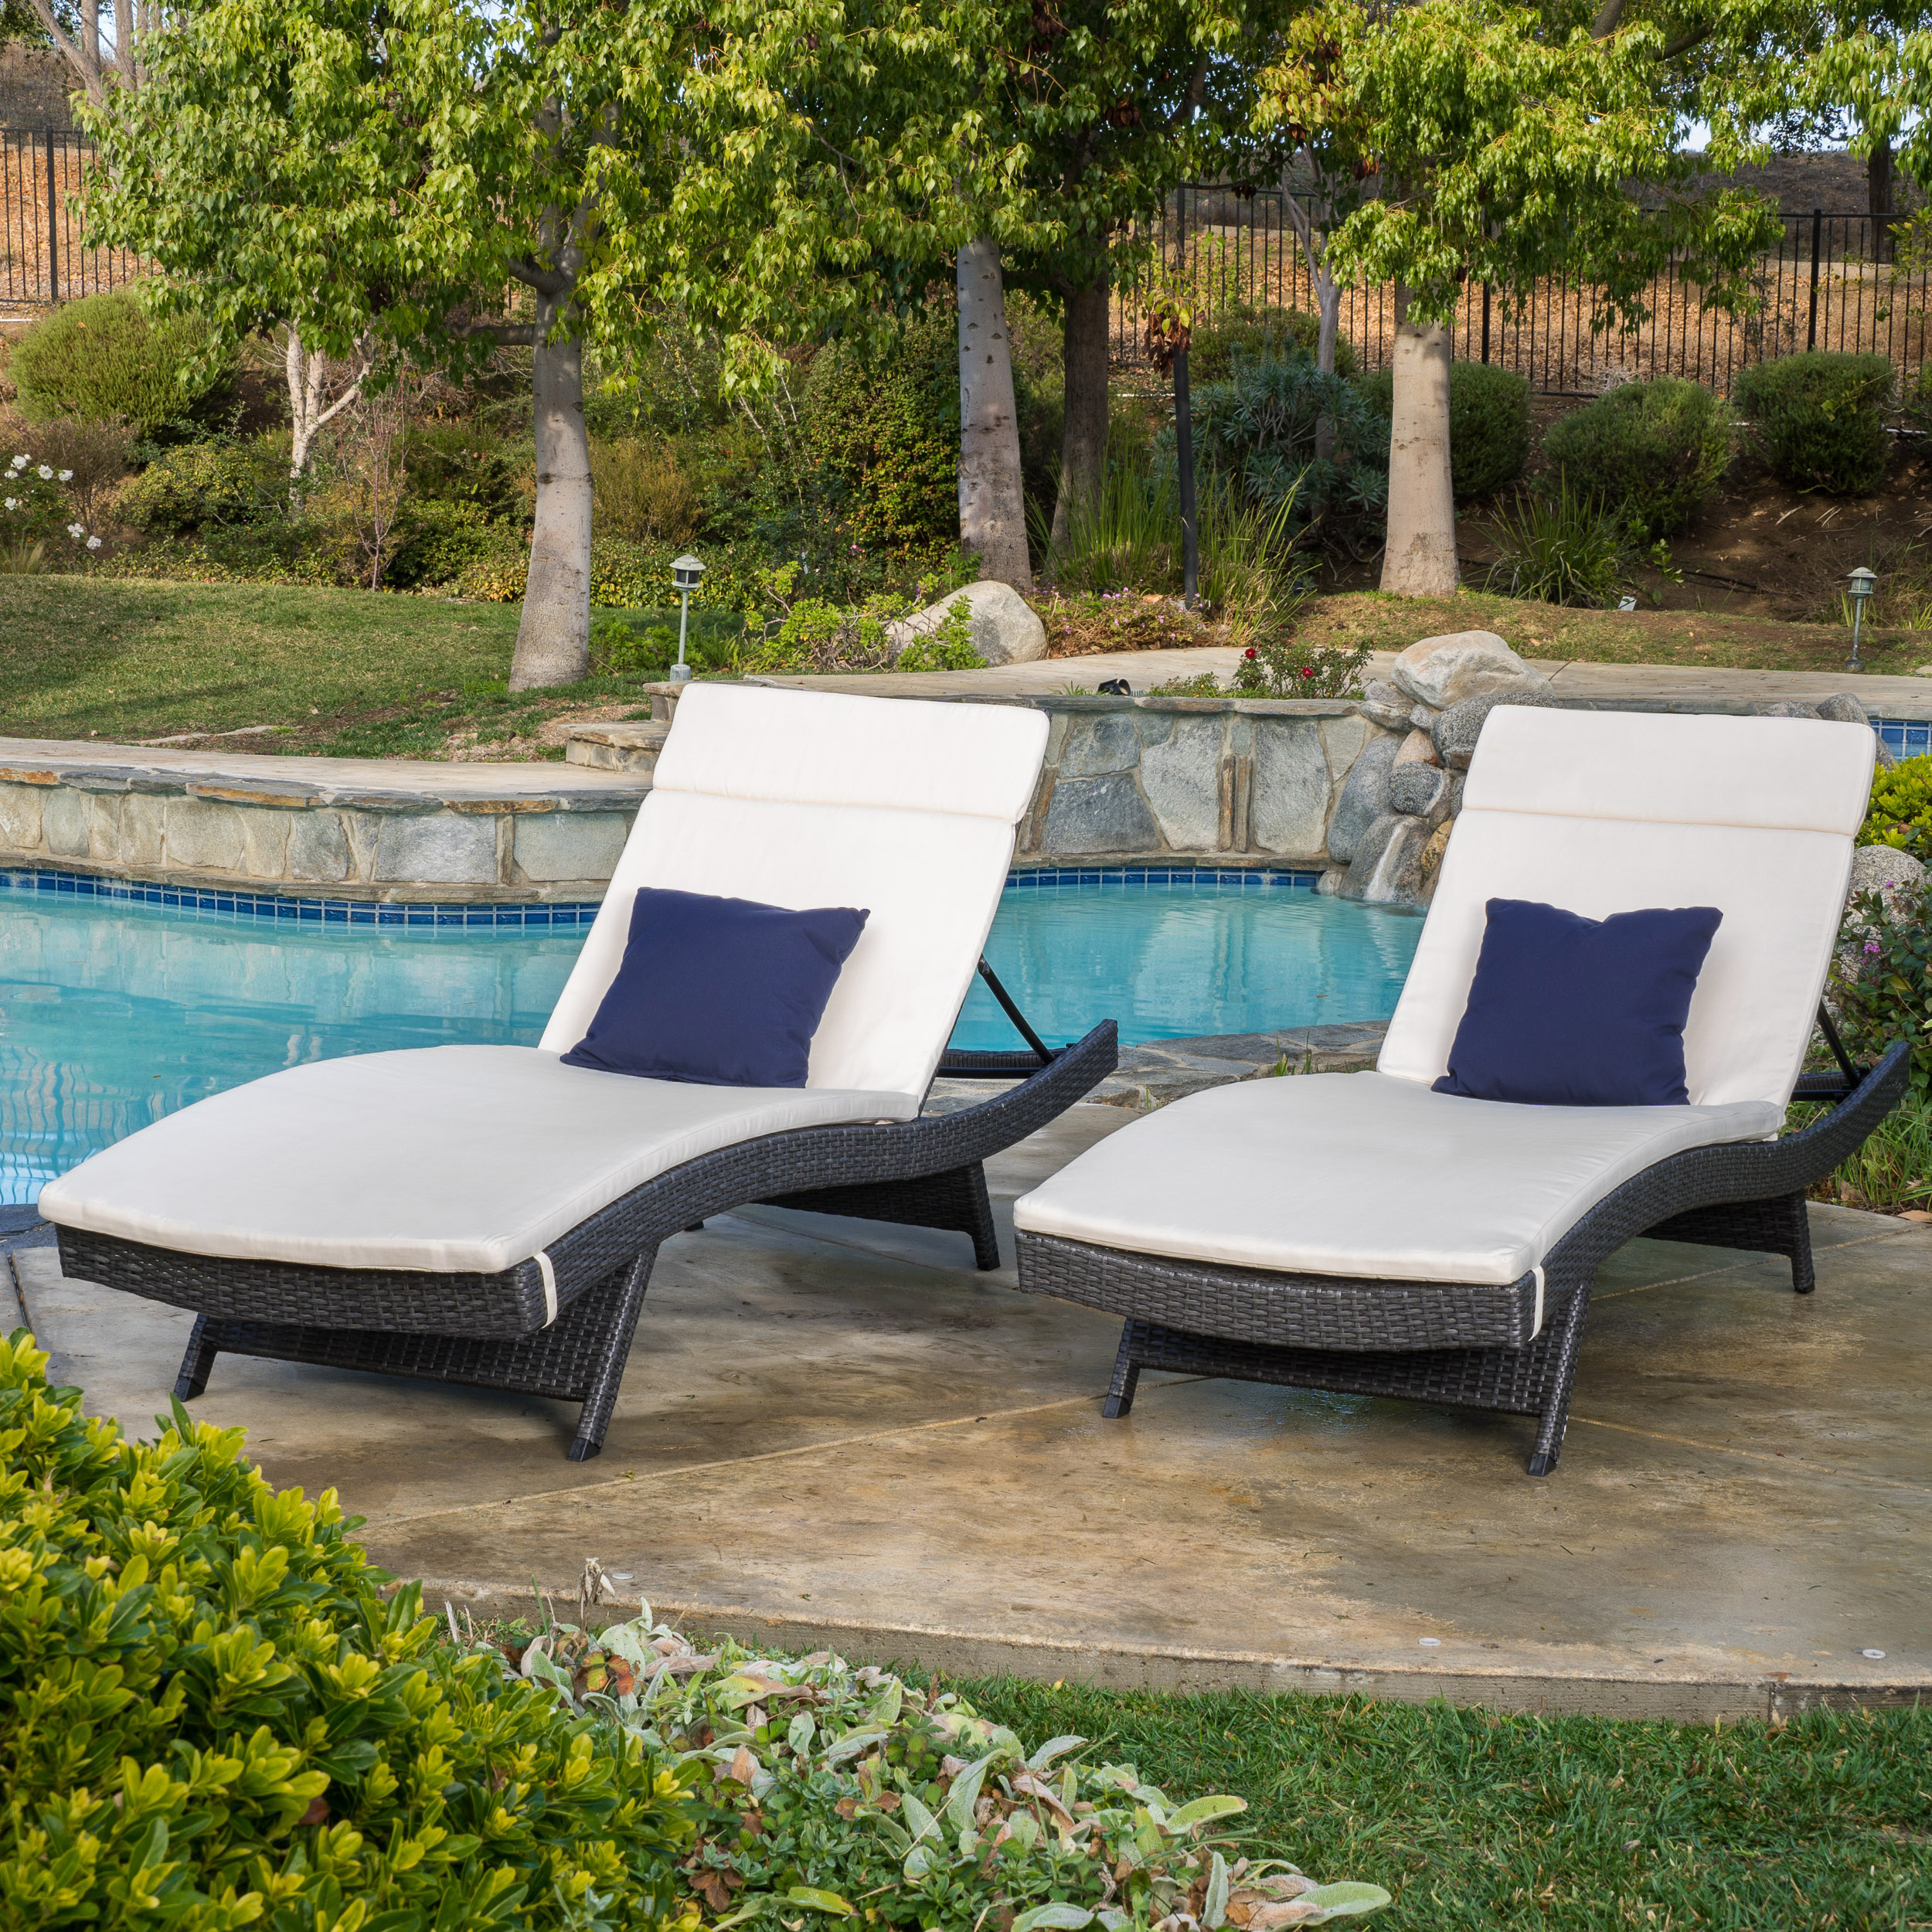 Anthony Outdoor Wicker Adjustable Chaise Lounge with Cushion, Set of 2, Grey, Beige